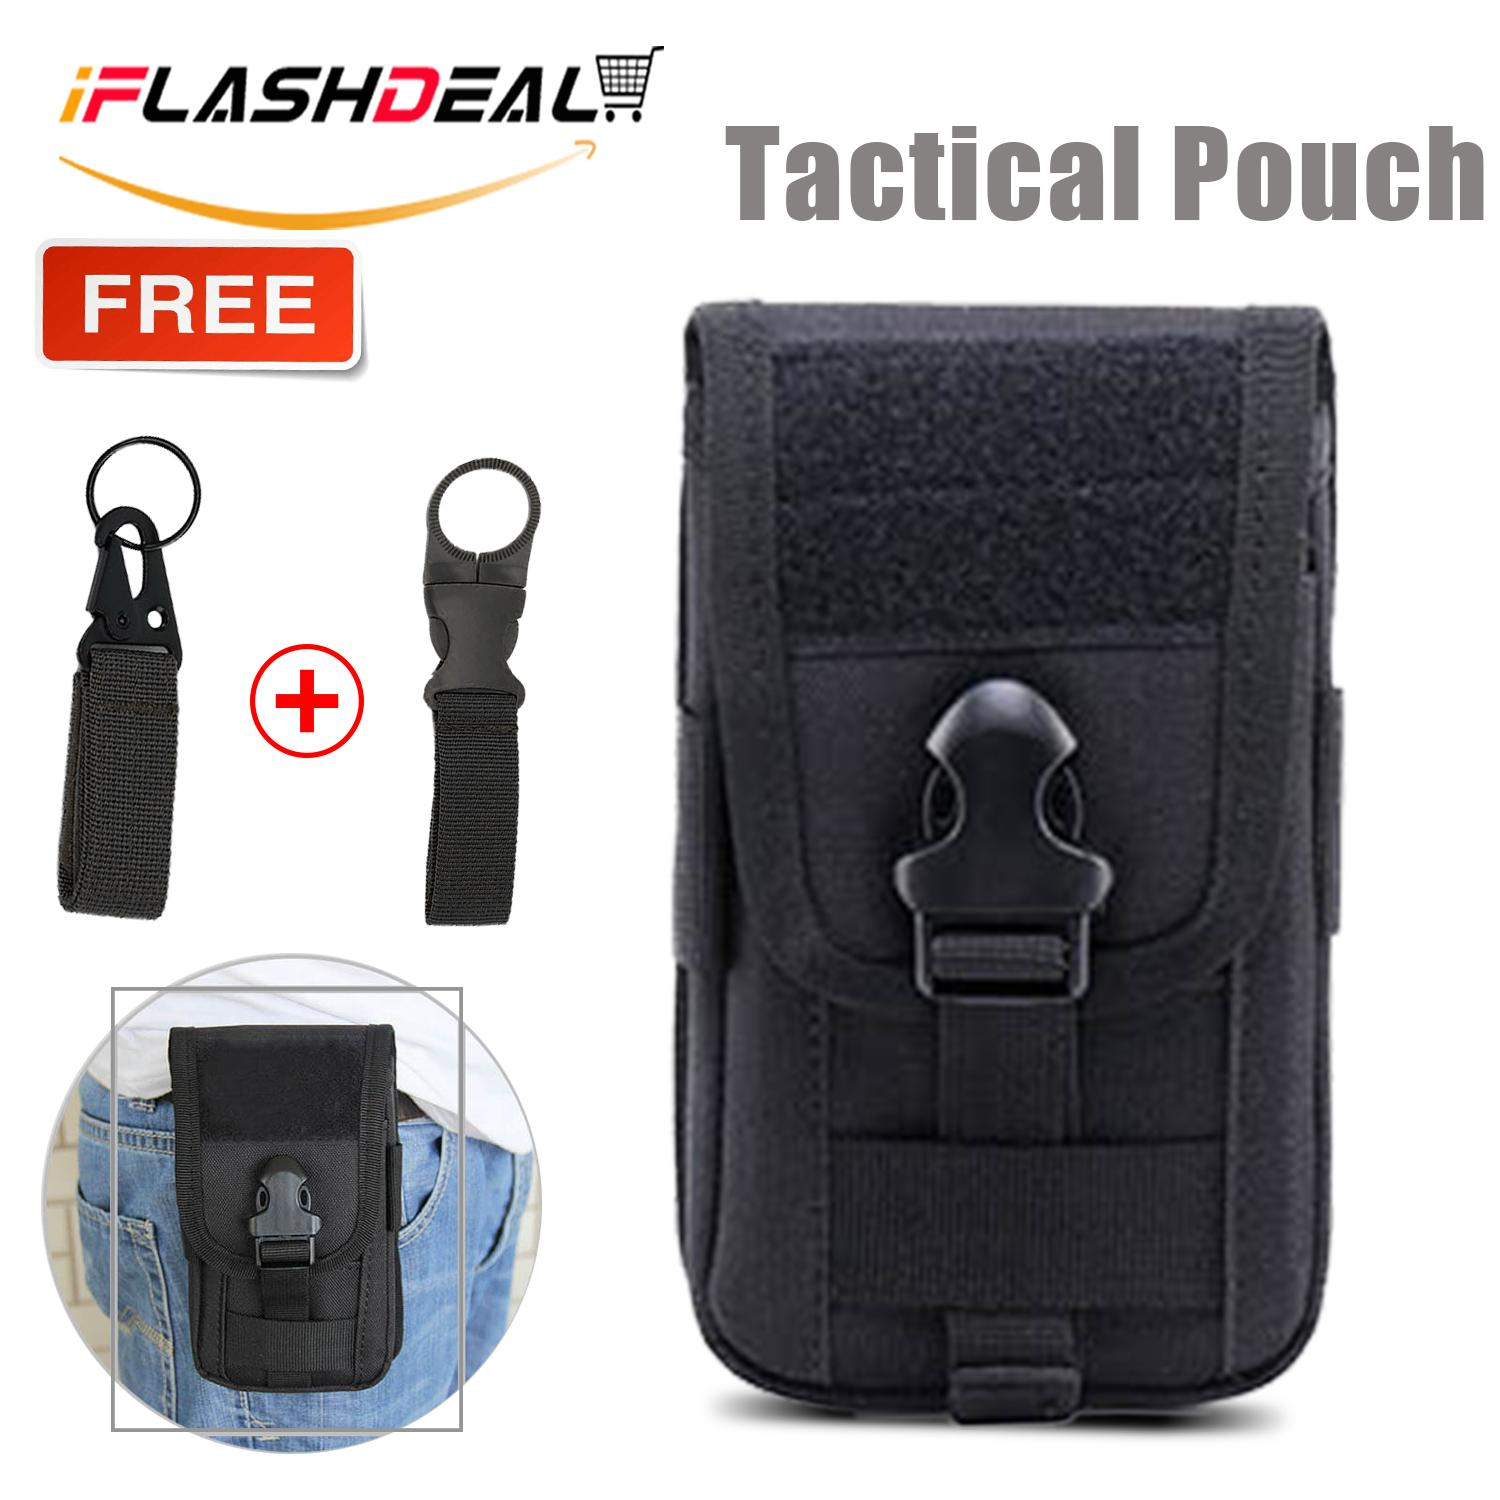 Iflashdeal Multipurpose Tactical Molle Pouch Edc Pouch Bag Military Belt Bag Gadget Phone Case Outdoor Holster Tactical Wallet Phone Pouch Utility Waist Packs With Cell Phone Holder By Iflashdeal.